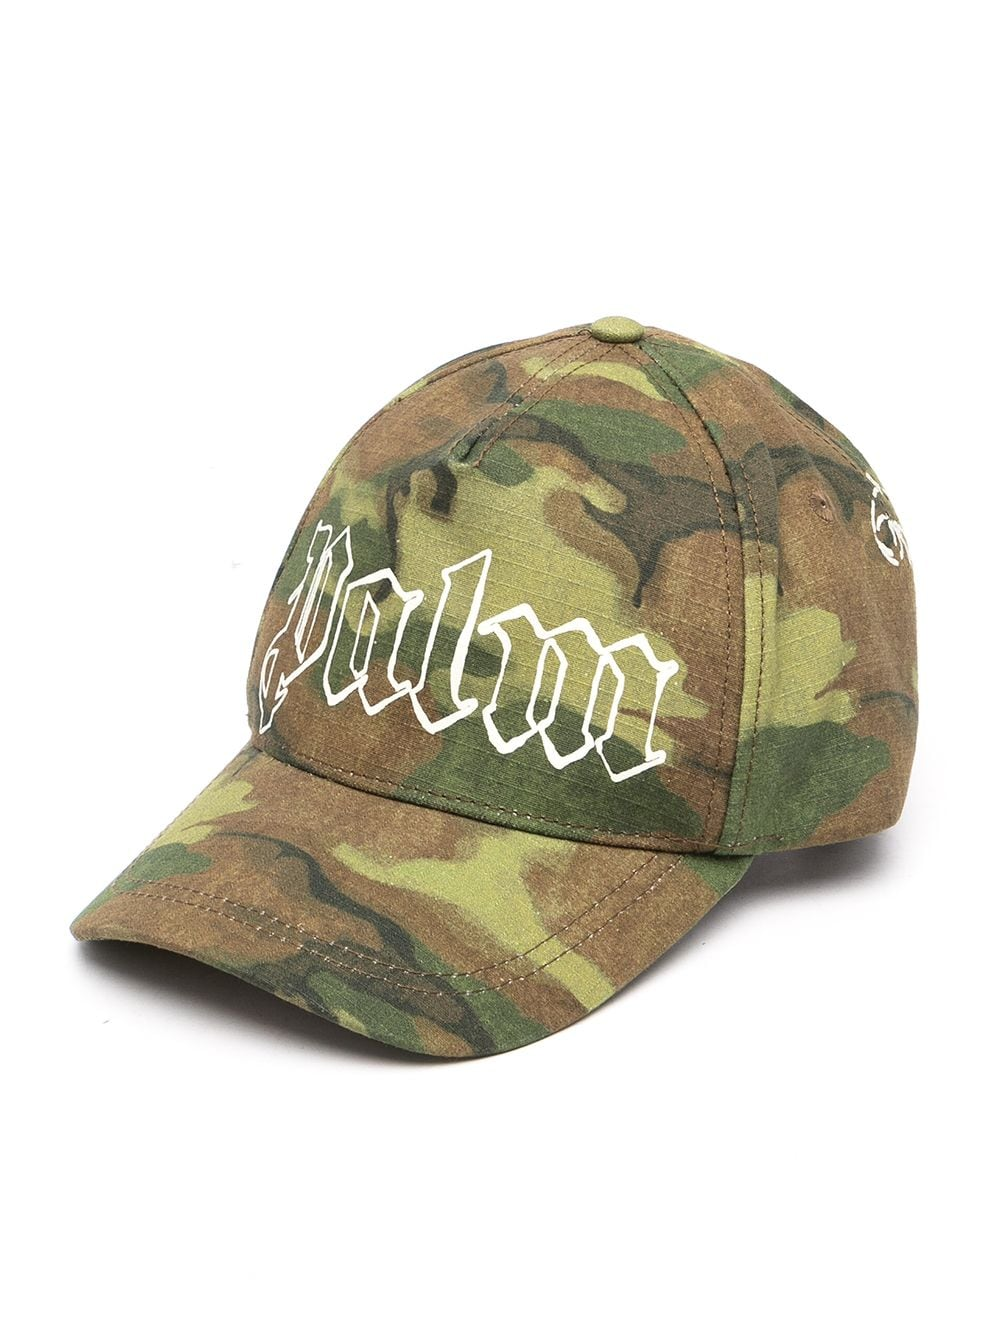 PALM ANGELS MILITARY LOGO CAP